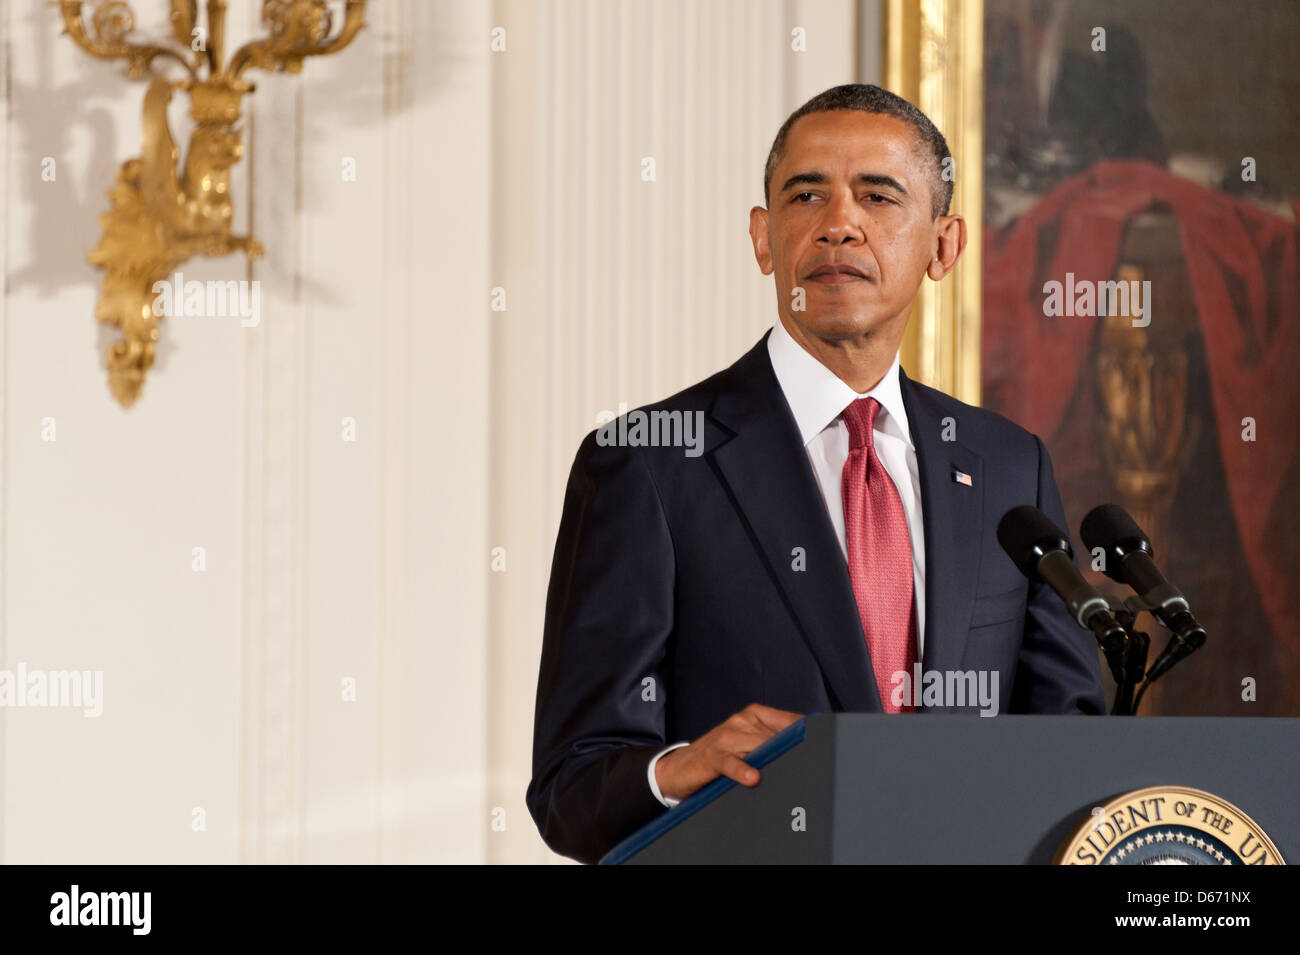 US President Barack Obama speaks during the posthumous Medal of Honor ceremony for US Army Chaplain Capt. Emil Kapaun - Stock Image